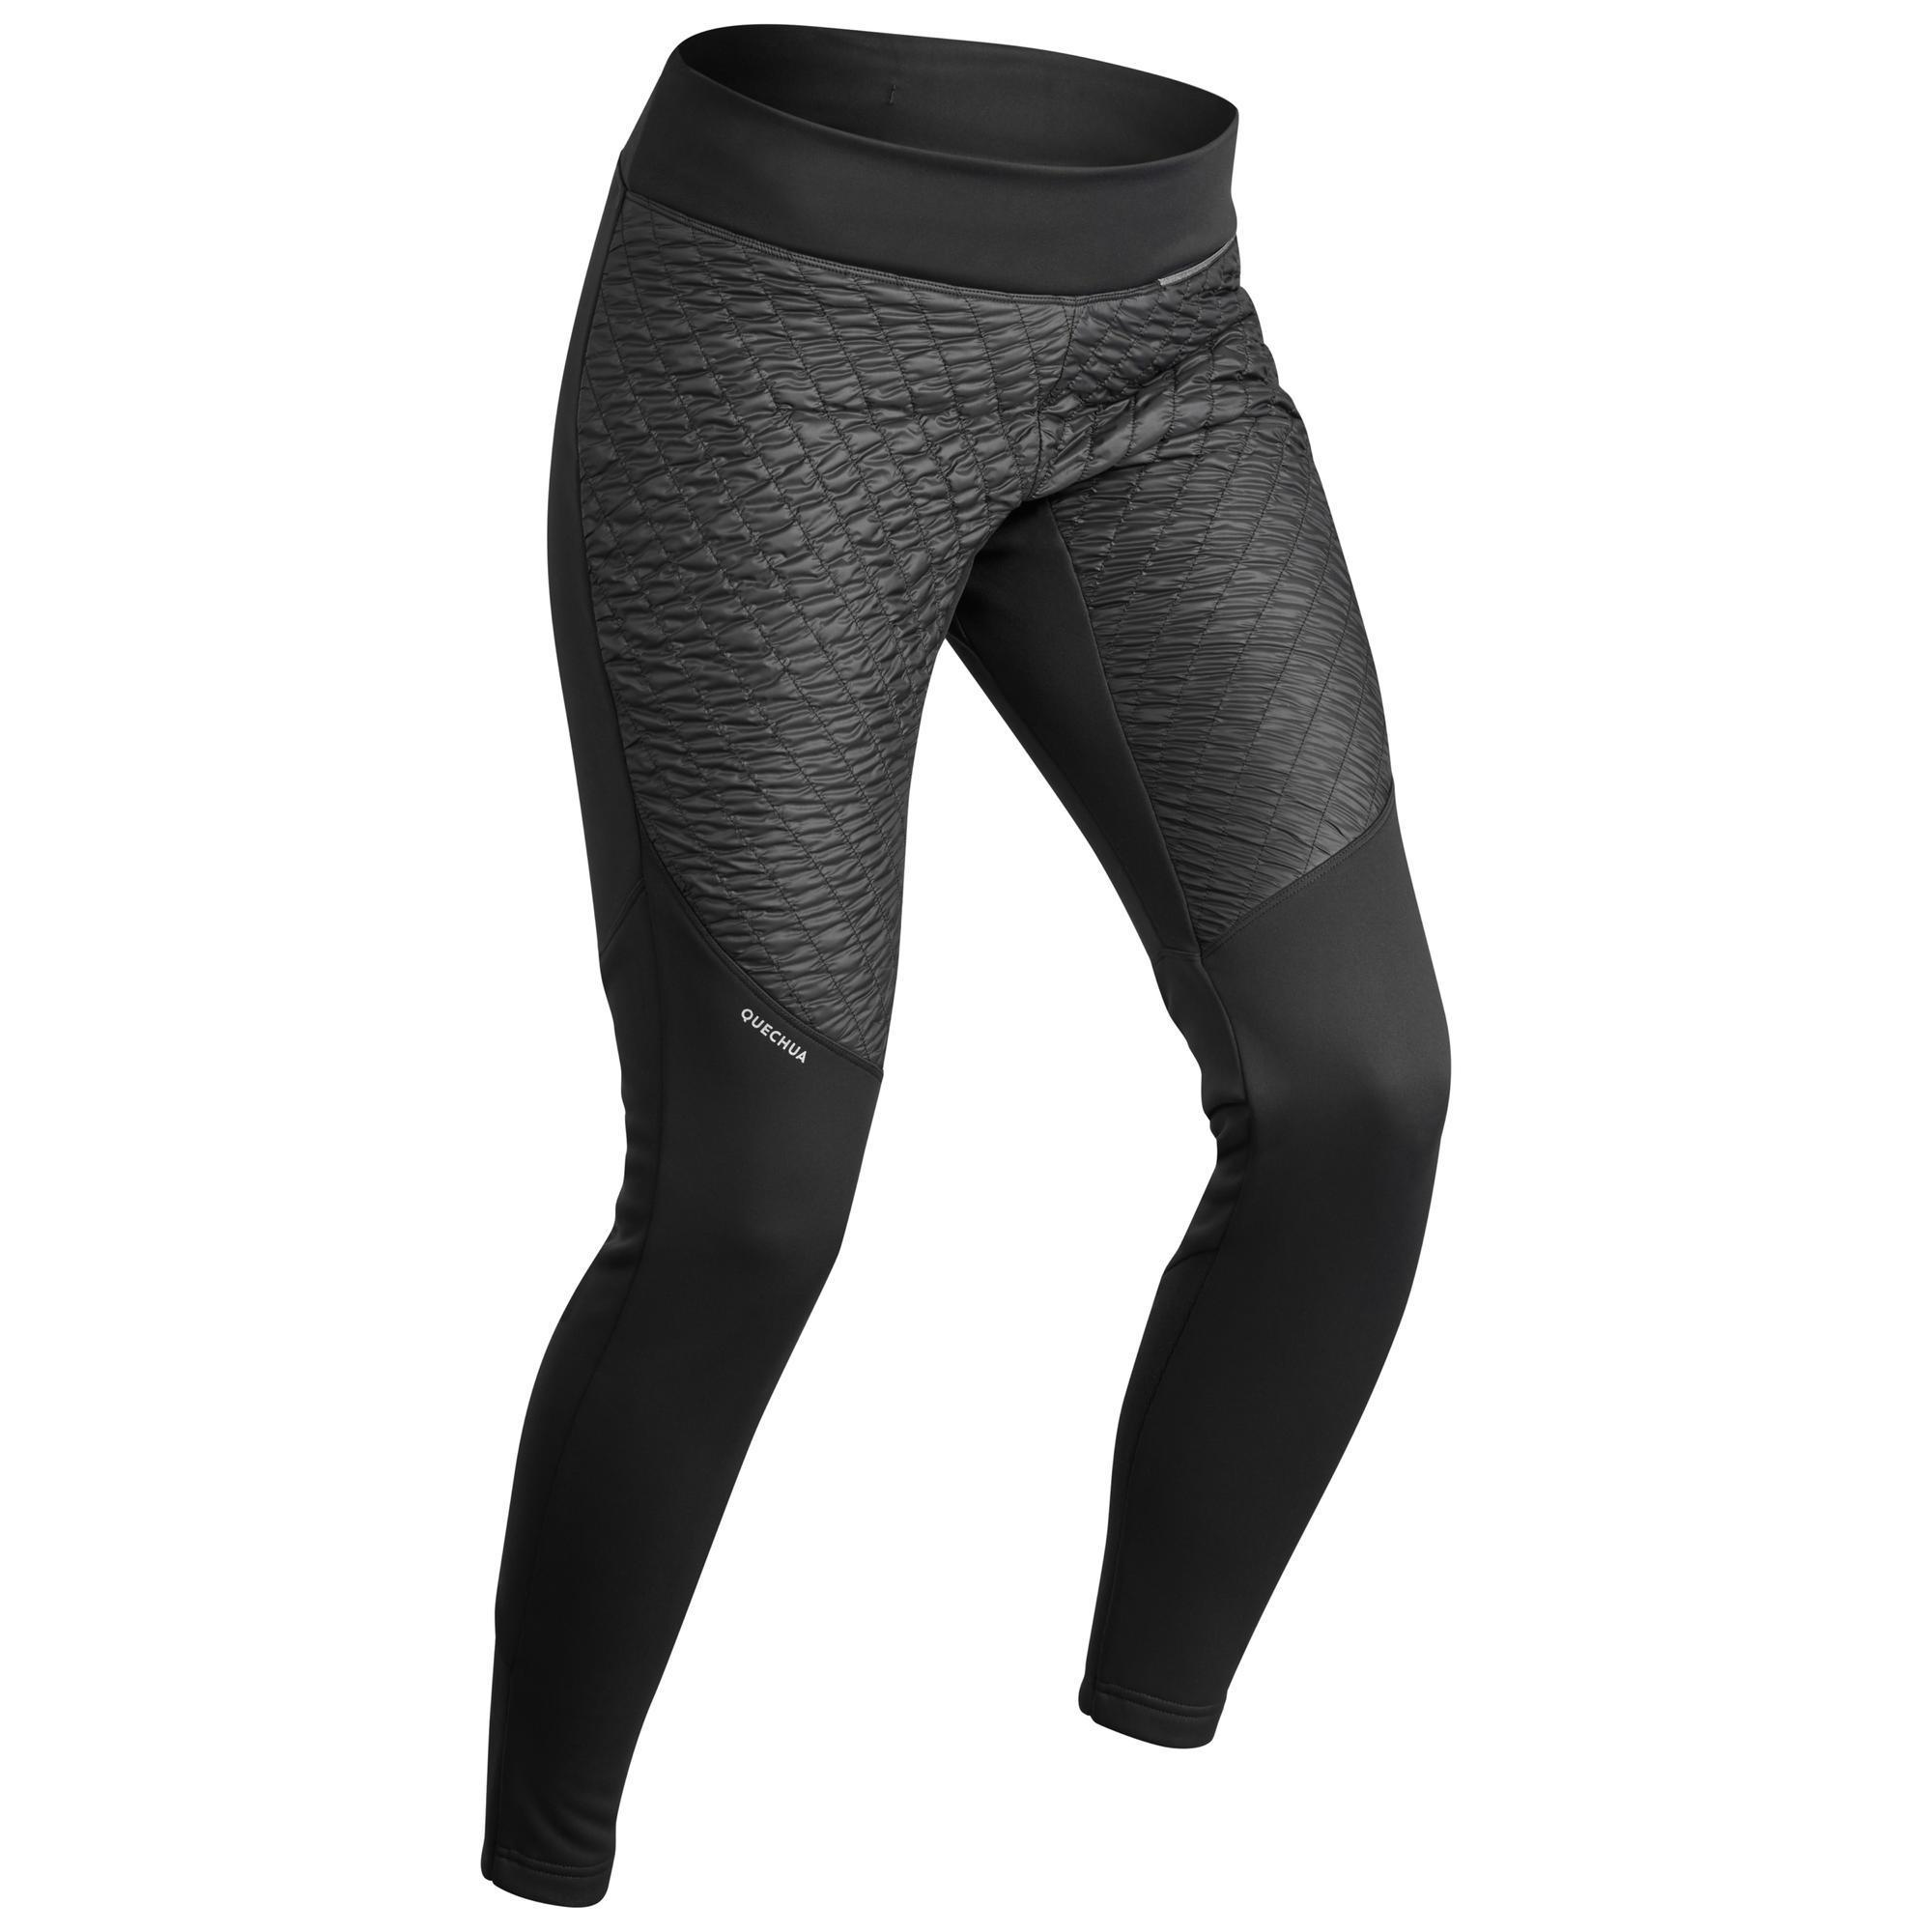 Leggings Winterwandern SH500 Warm Damen schwarz